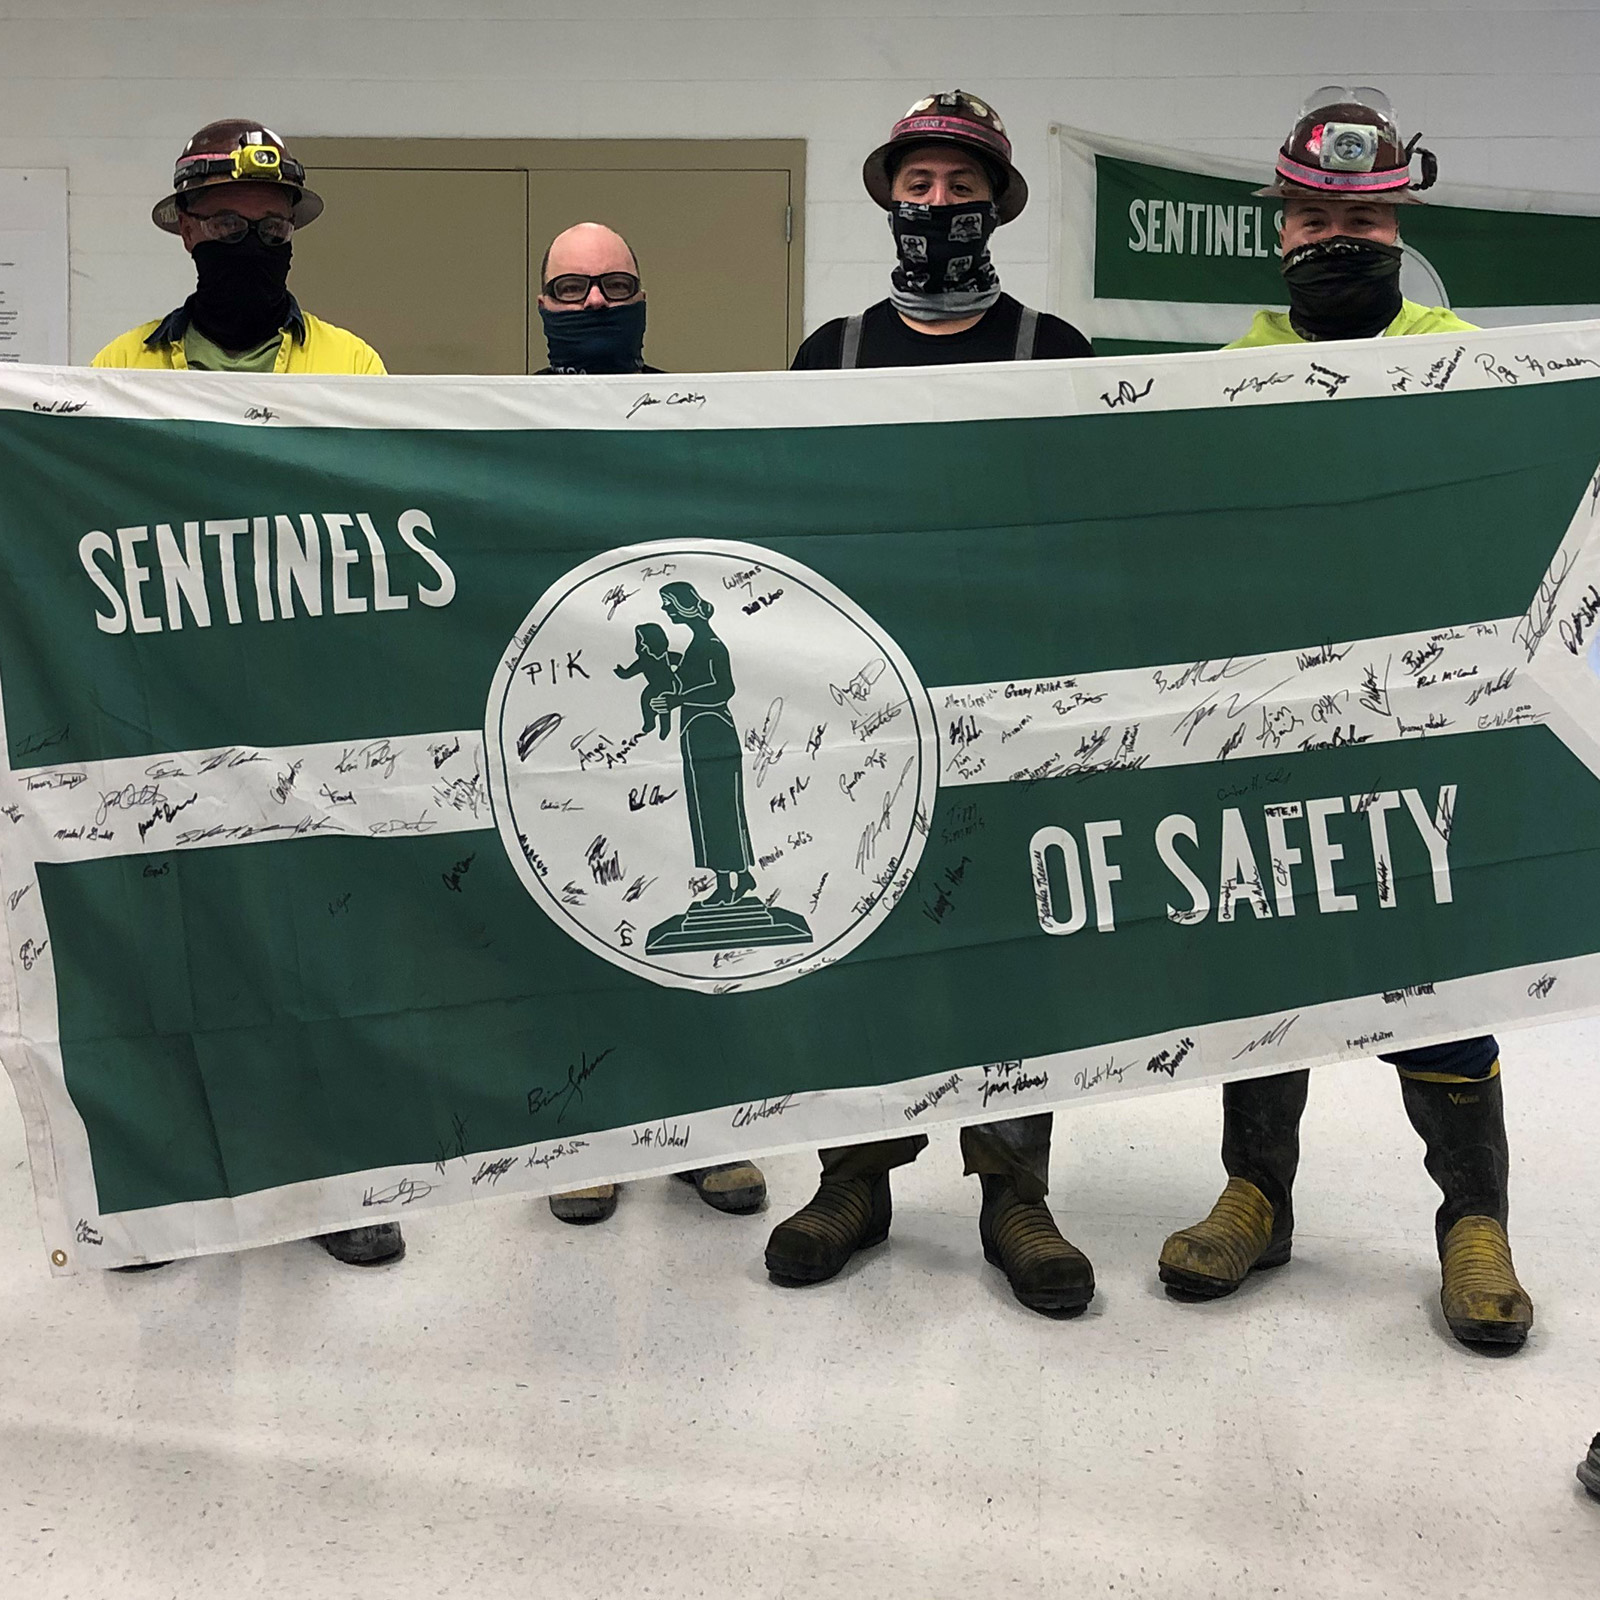 The Cortez team celebrates winning the Nevada Mining Association's 2020 Sentinels of Safety Award.